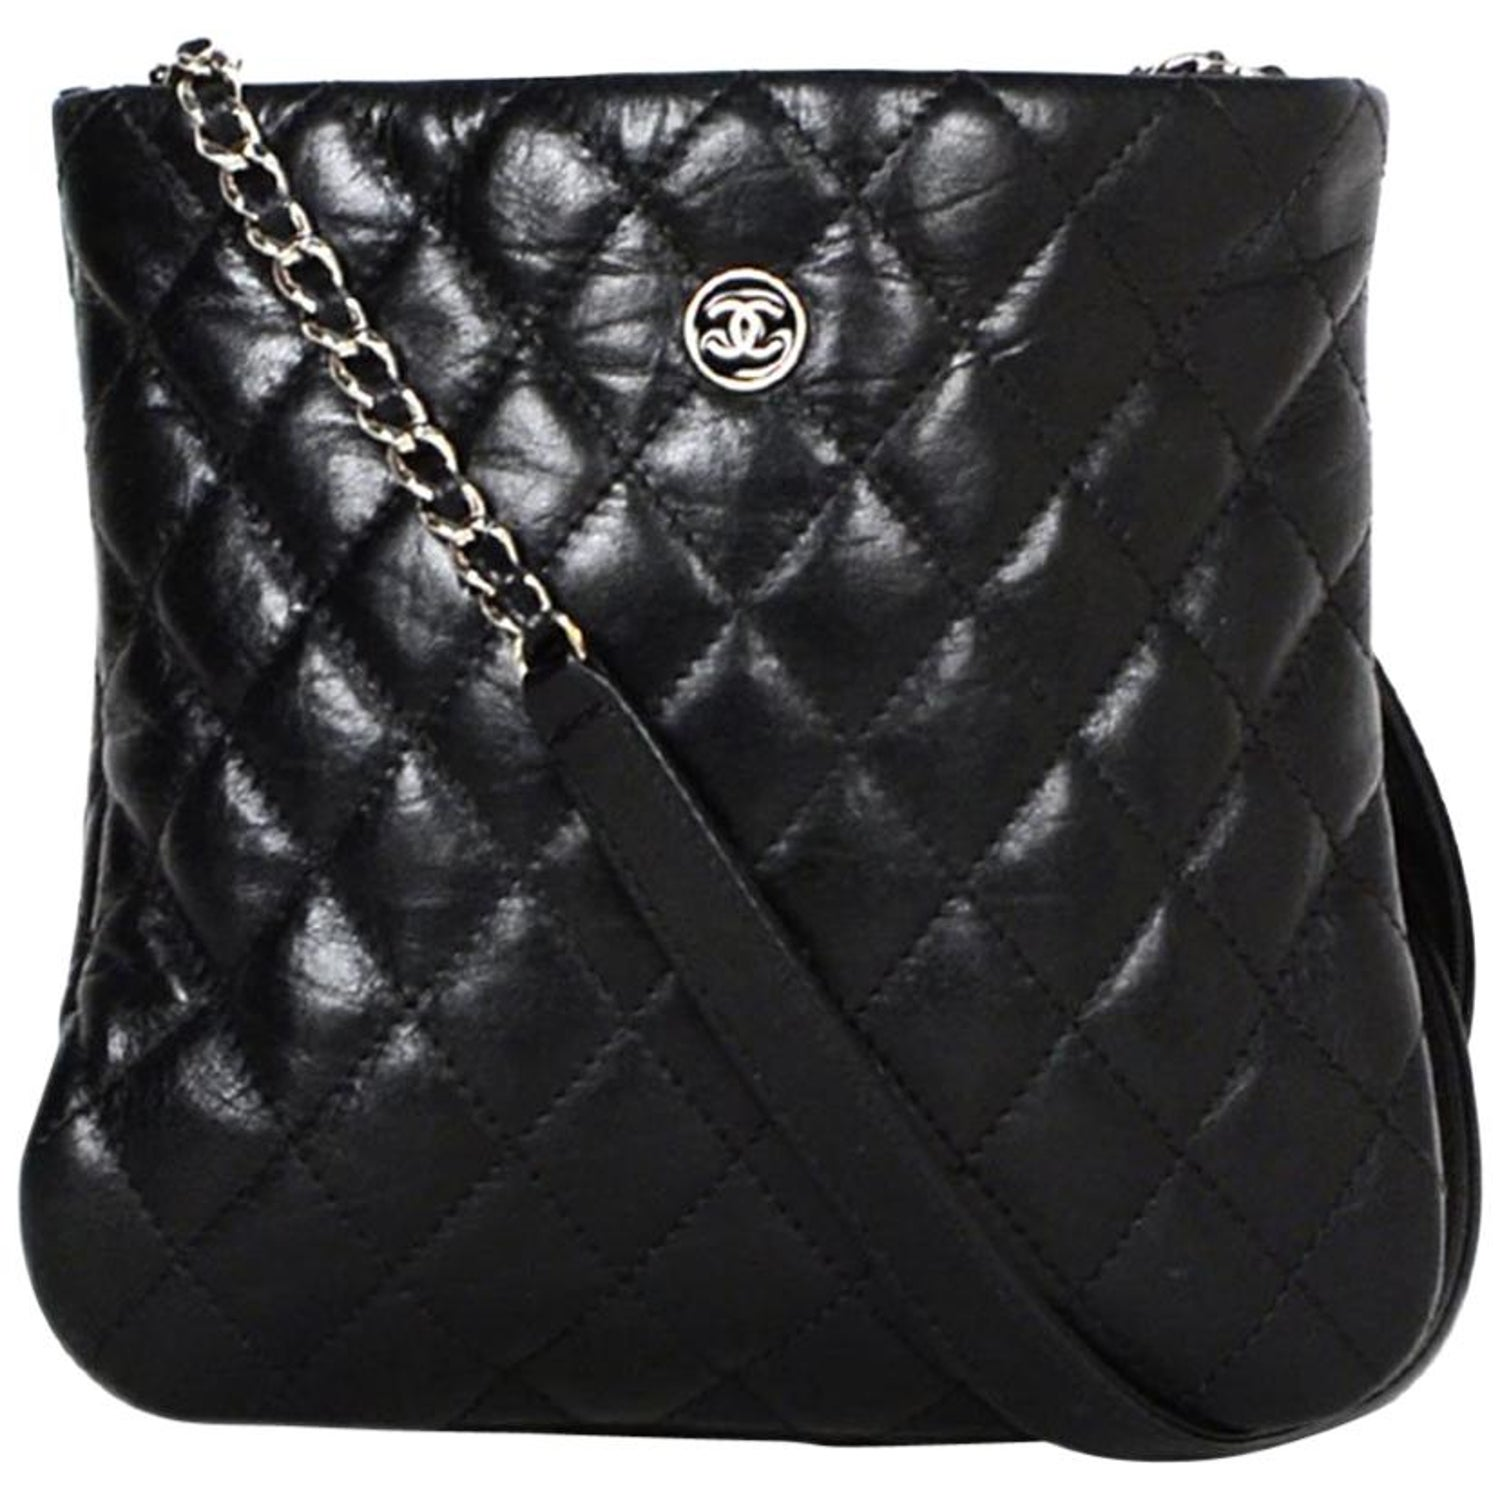 60949a29eaed Chanel Black Distressed Calfskin Quilted Uniform Crossbody Bag For Sale at  1stdibs